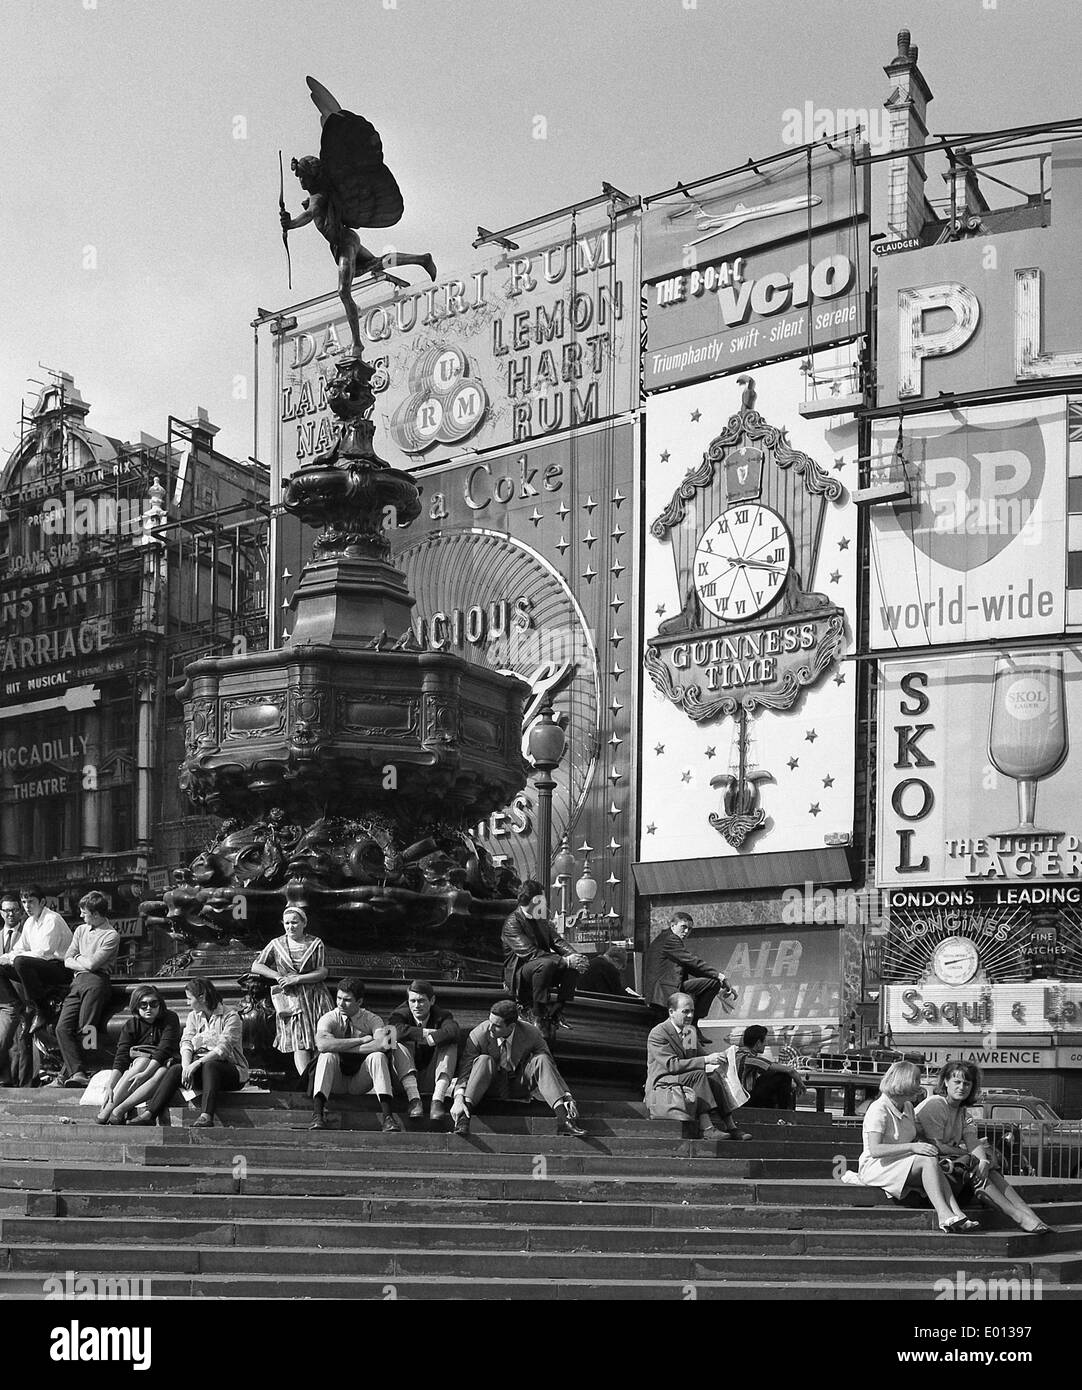 Piccadilly Circus in London, 1964 - Stock Image